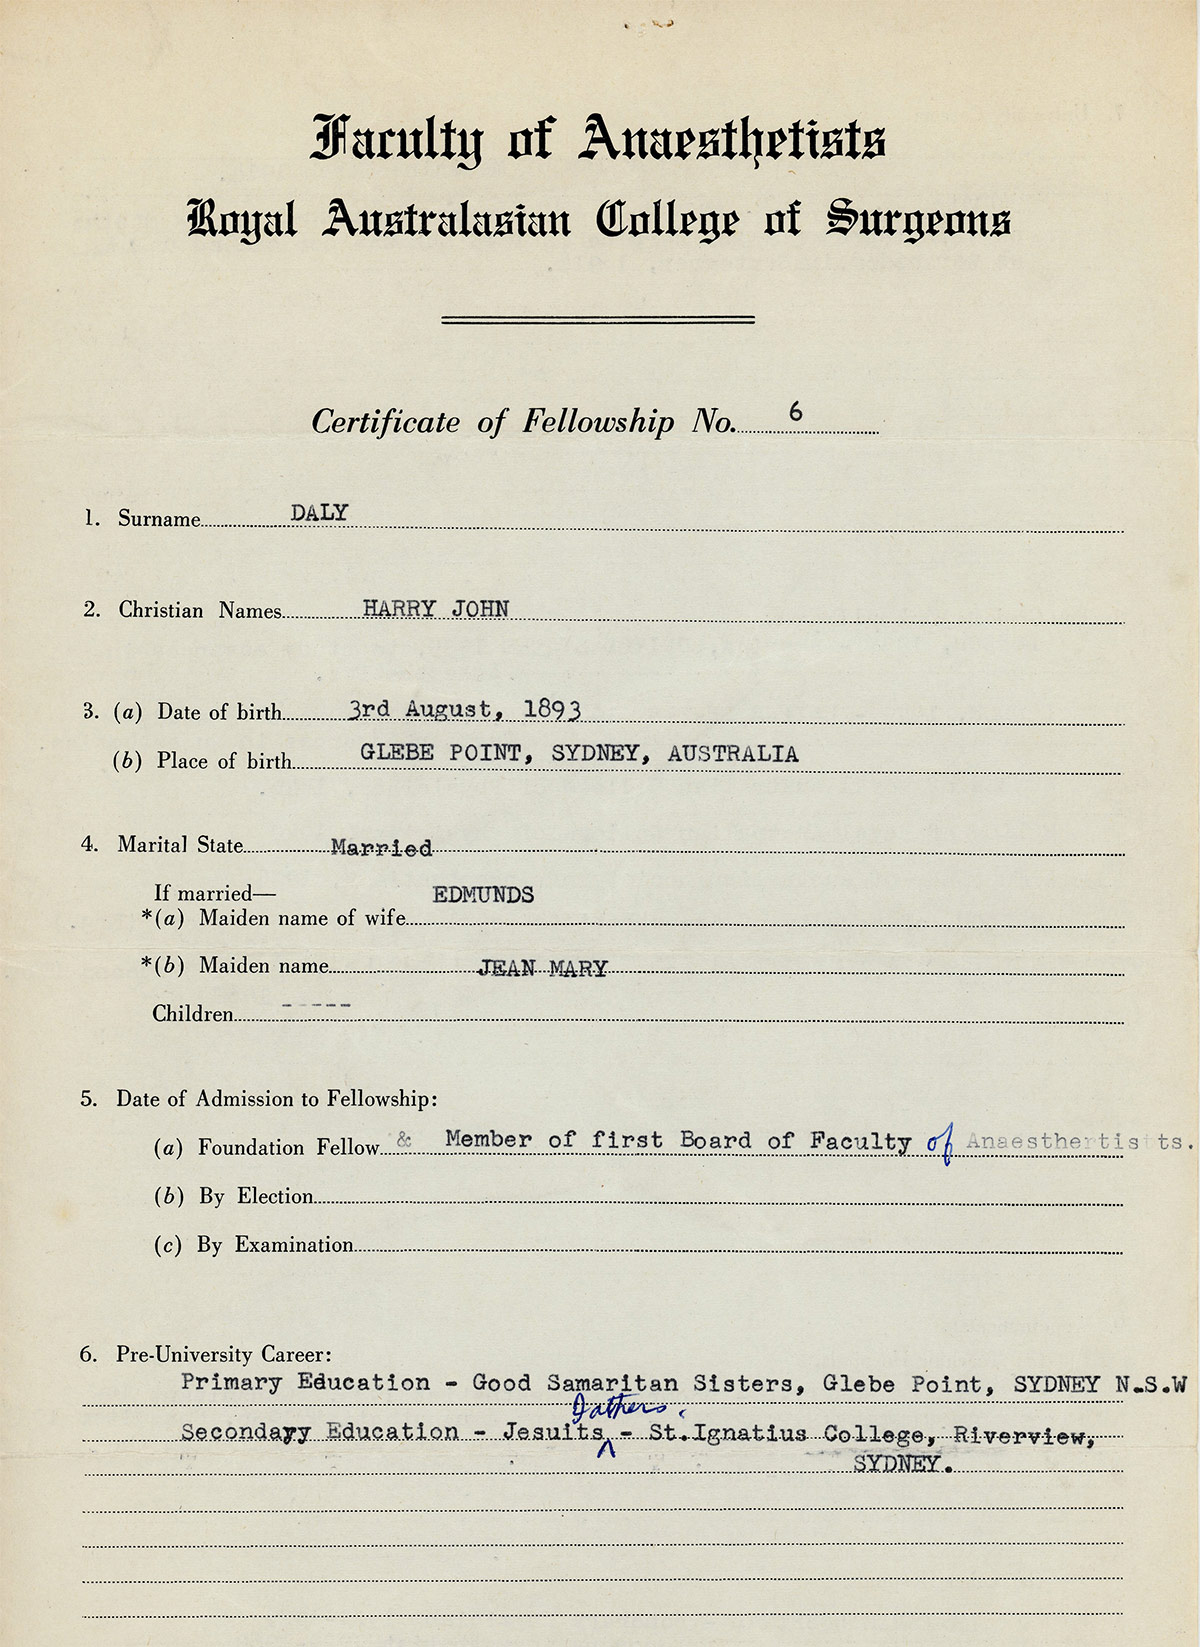 Harry Daly Certificate of Fellowship